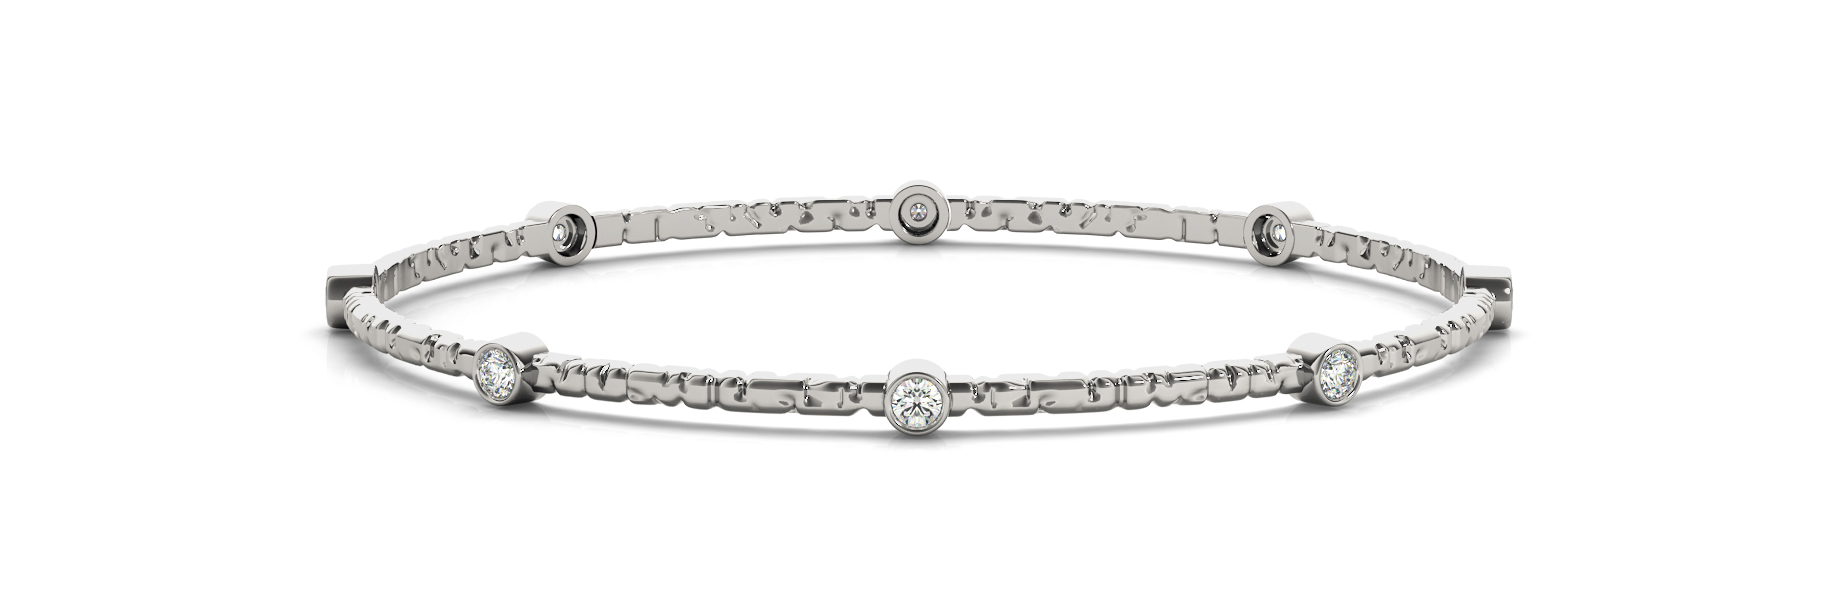 1.2 Carat Round Diamond Bangle in Platinum